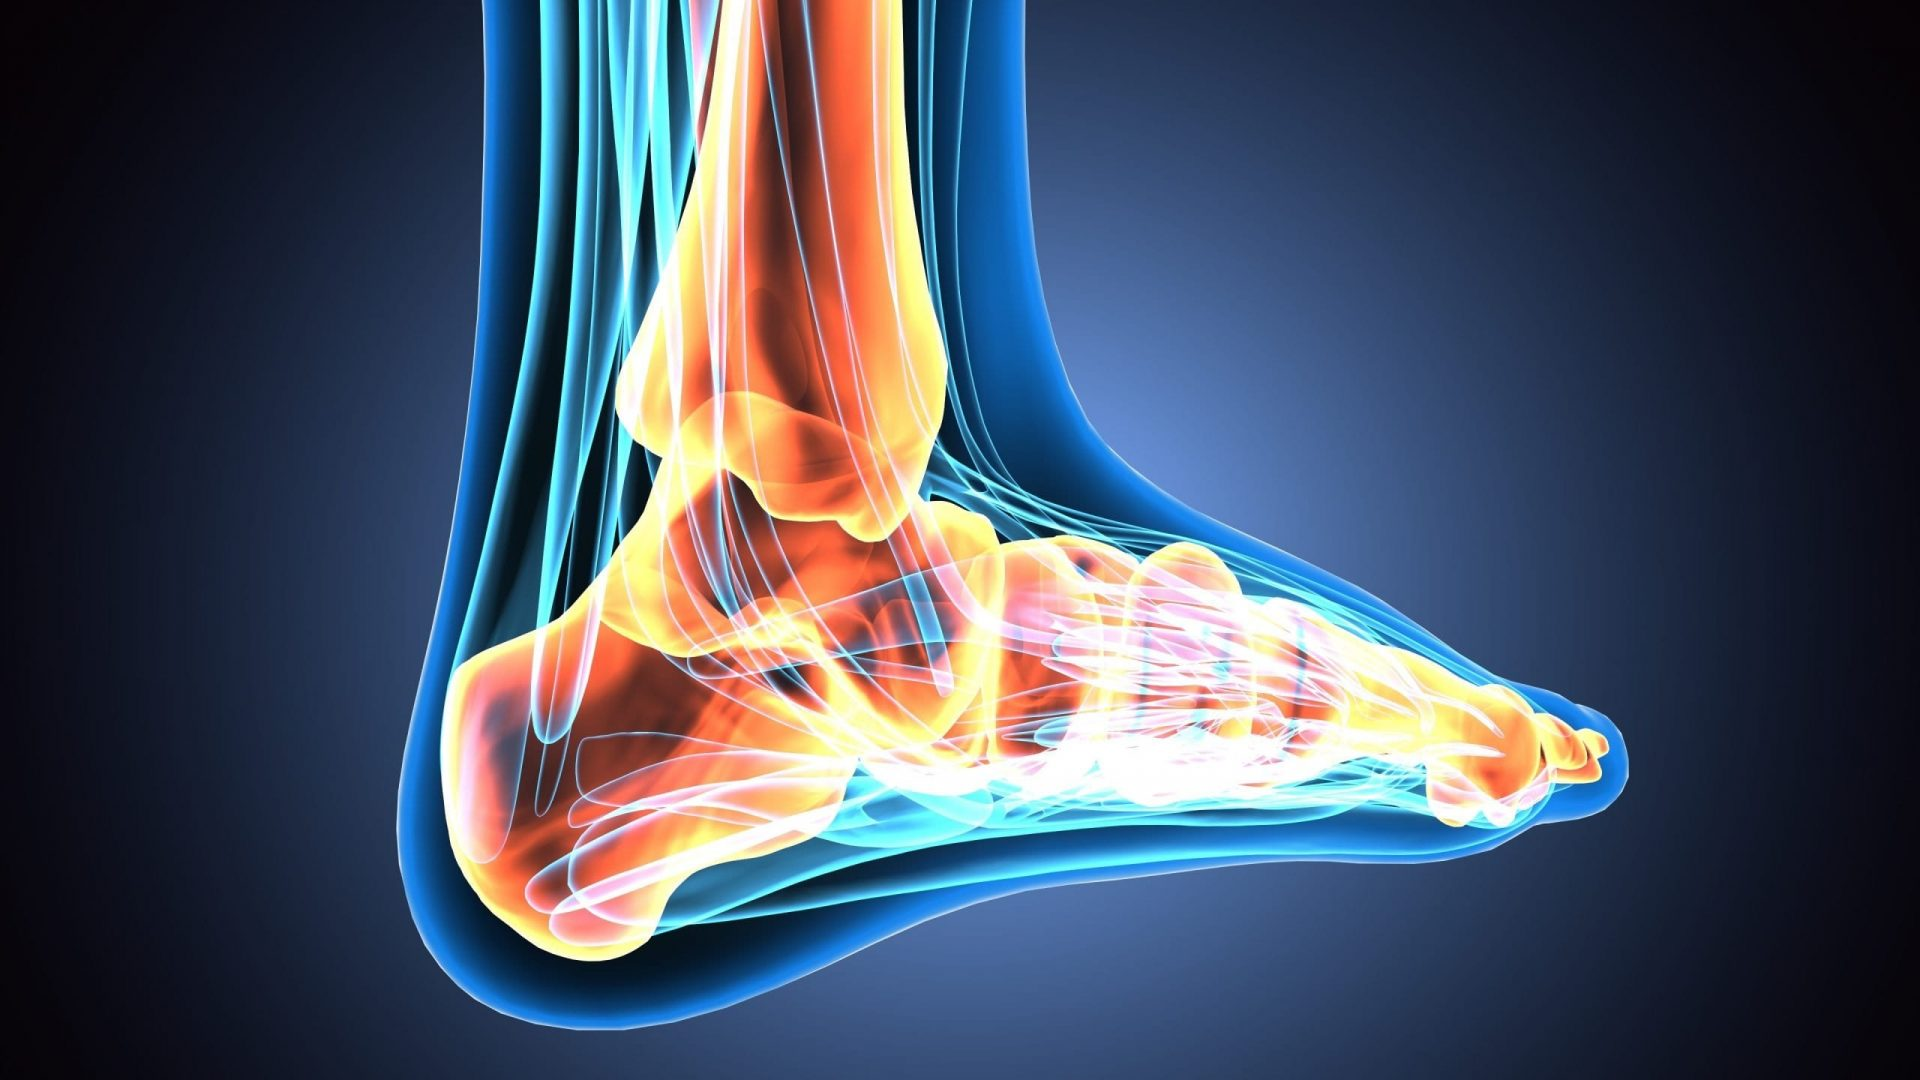 WBCT & MRI Study Sheds Light On Flat Foot Degeneration